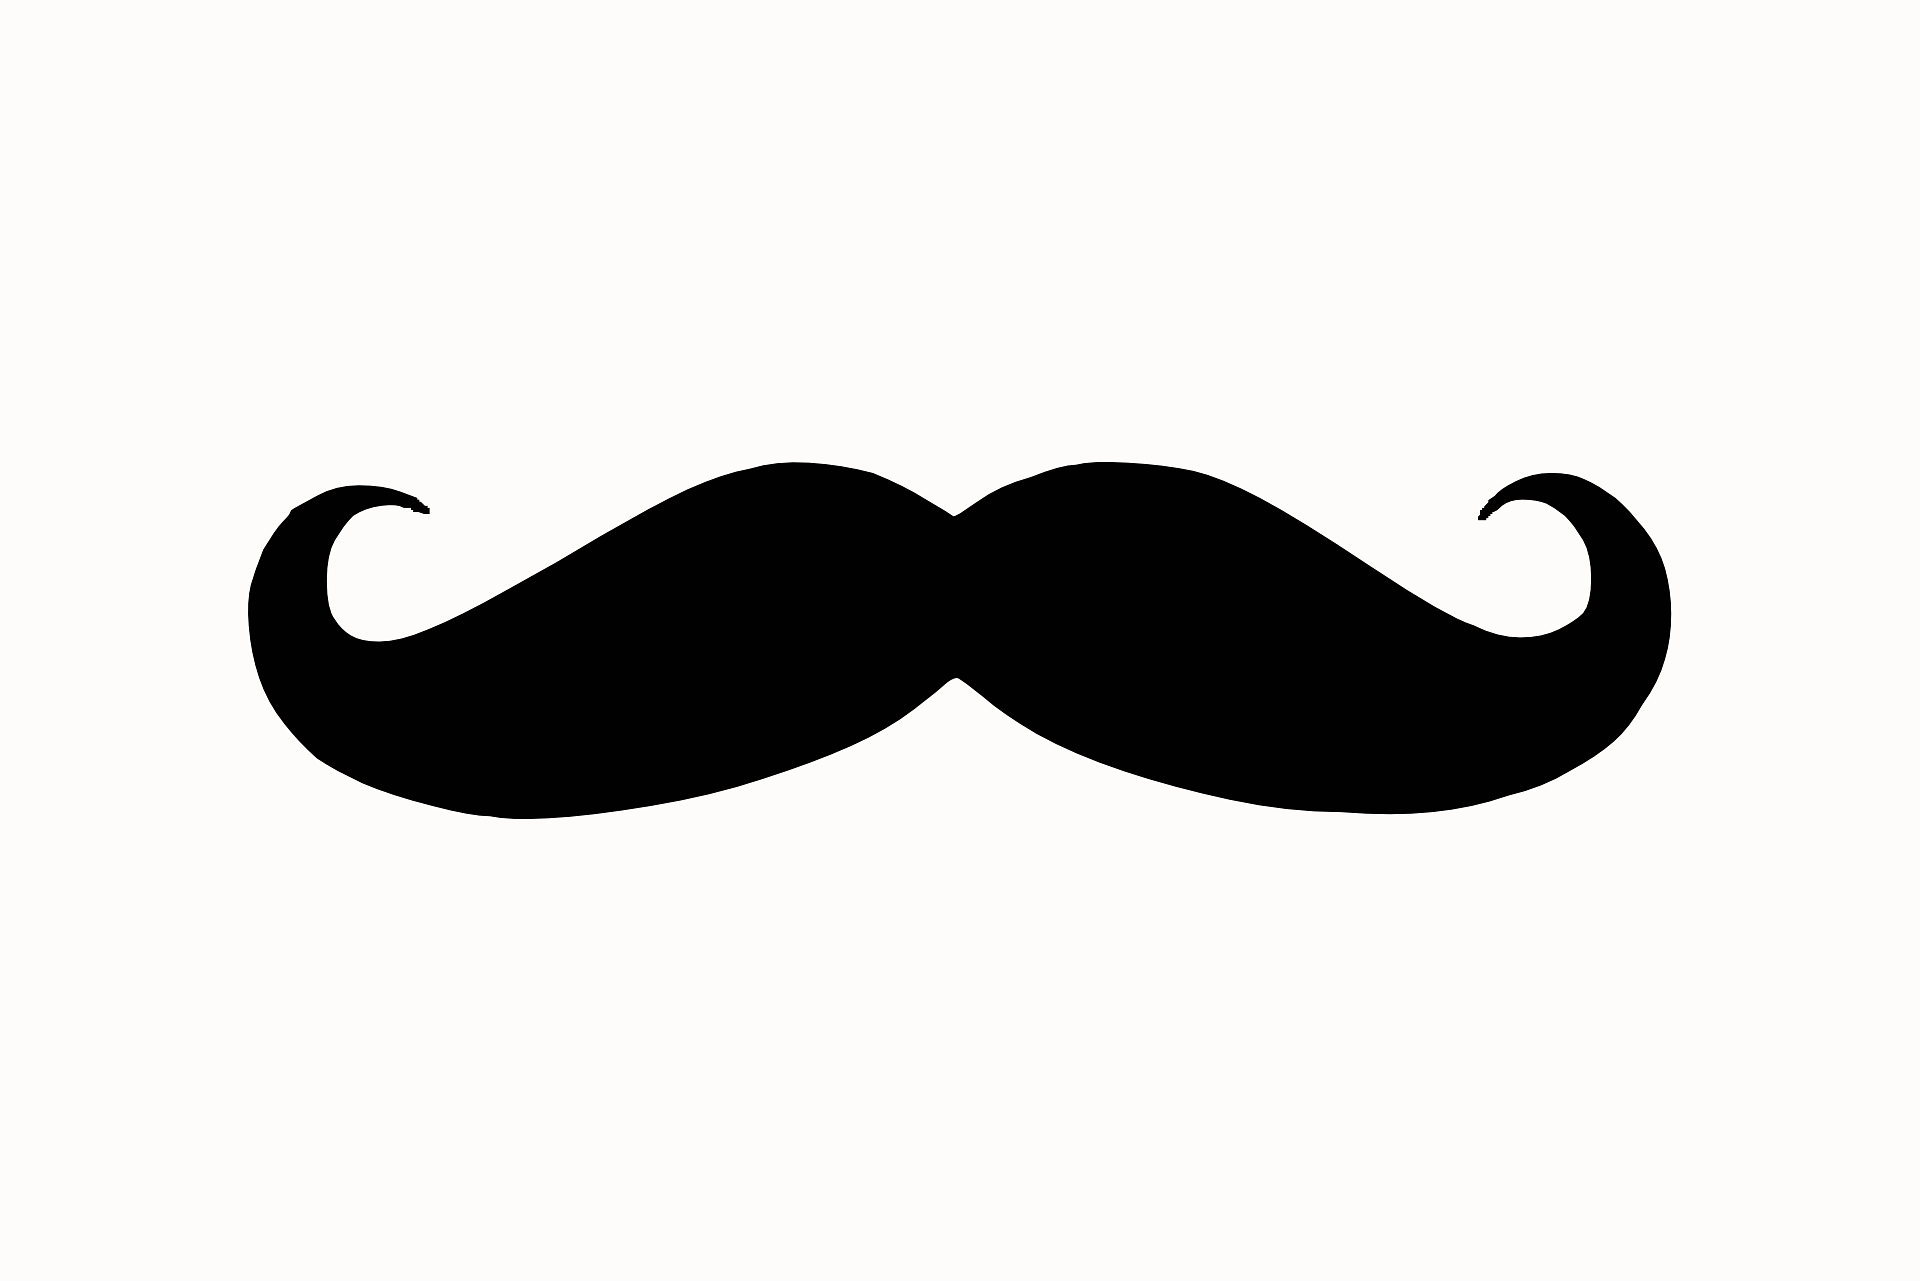 Movember solidario